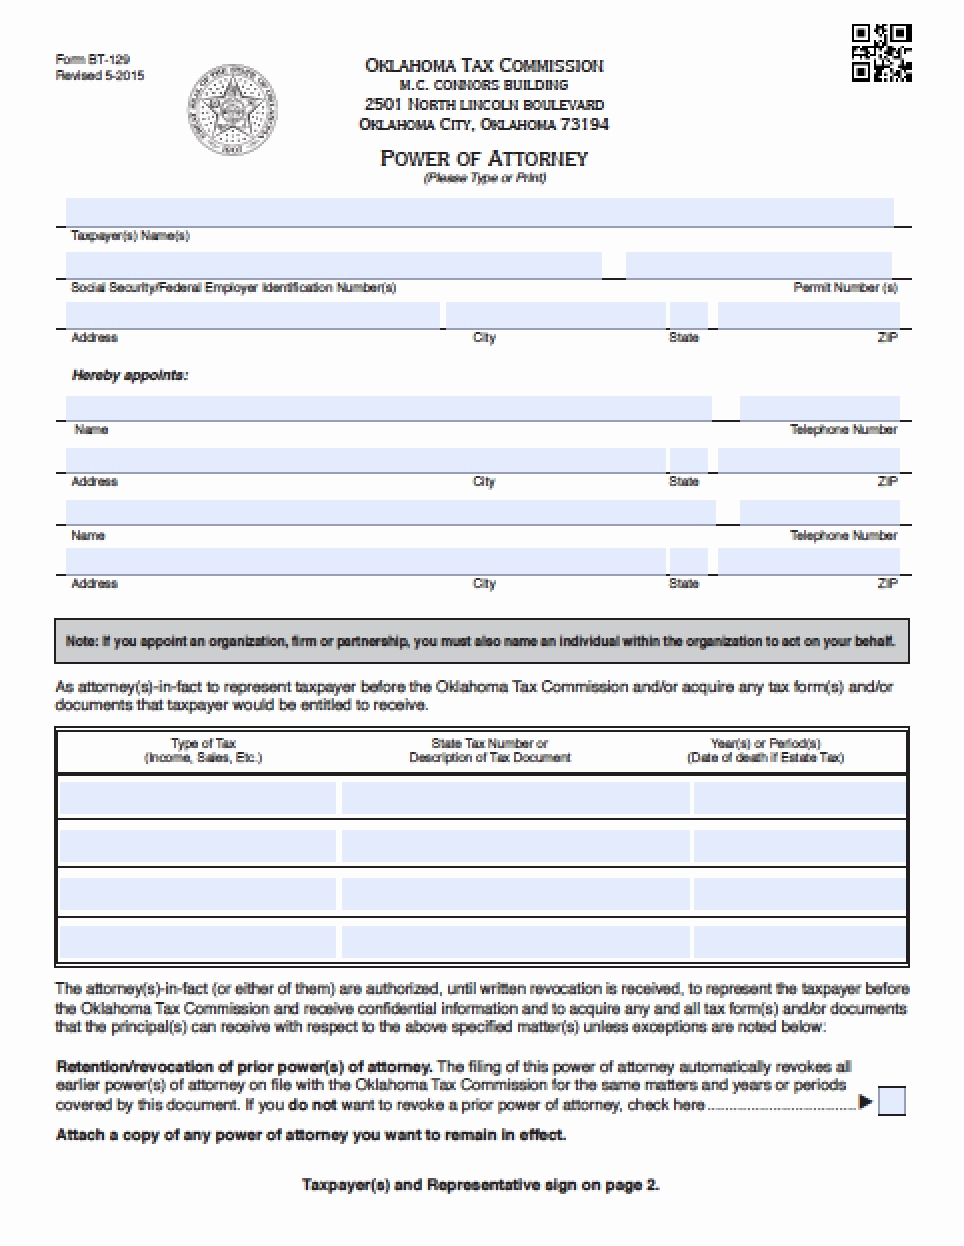 Durable Power Of Attorney Form Oklahoma Awesome Forms Free Printable Revocation Power Attorney Form Gallery Tax